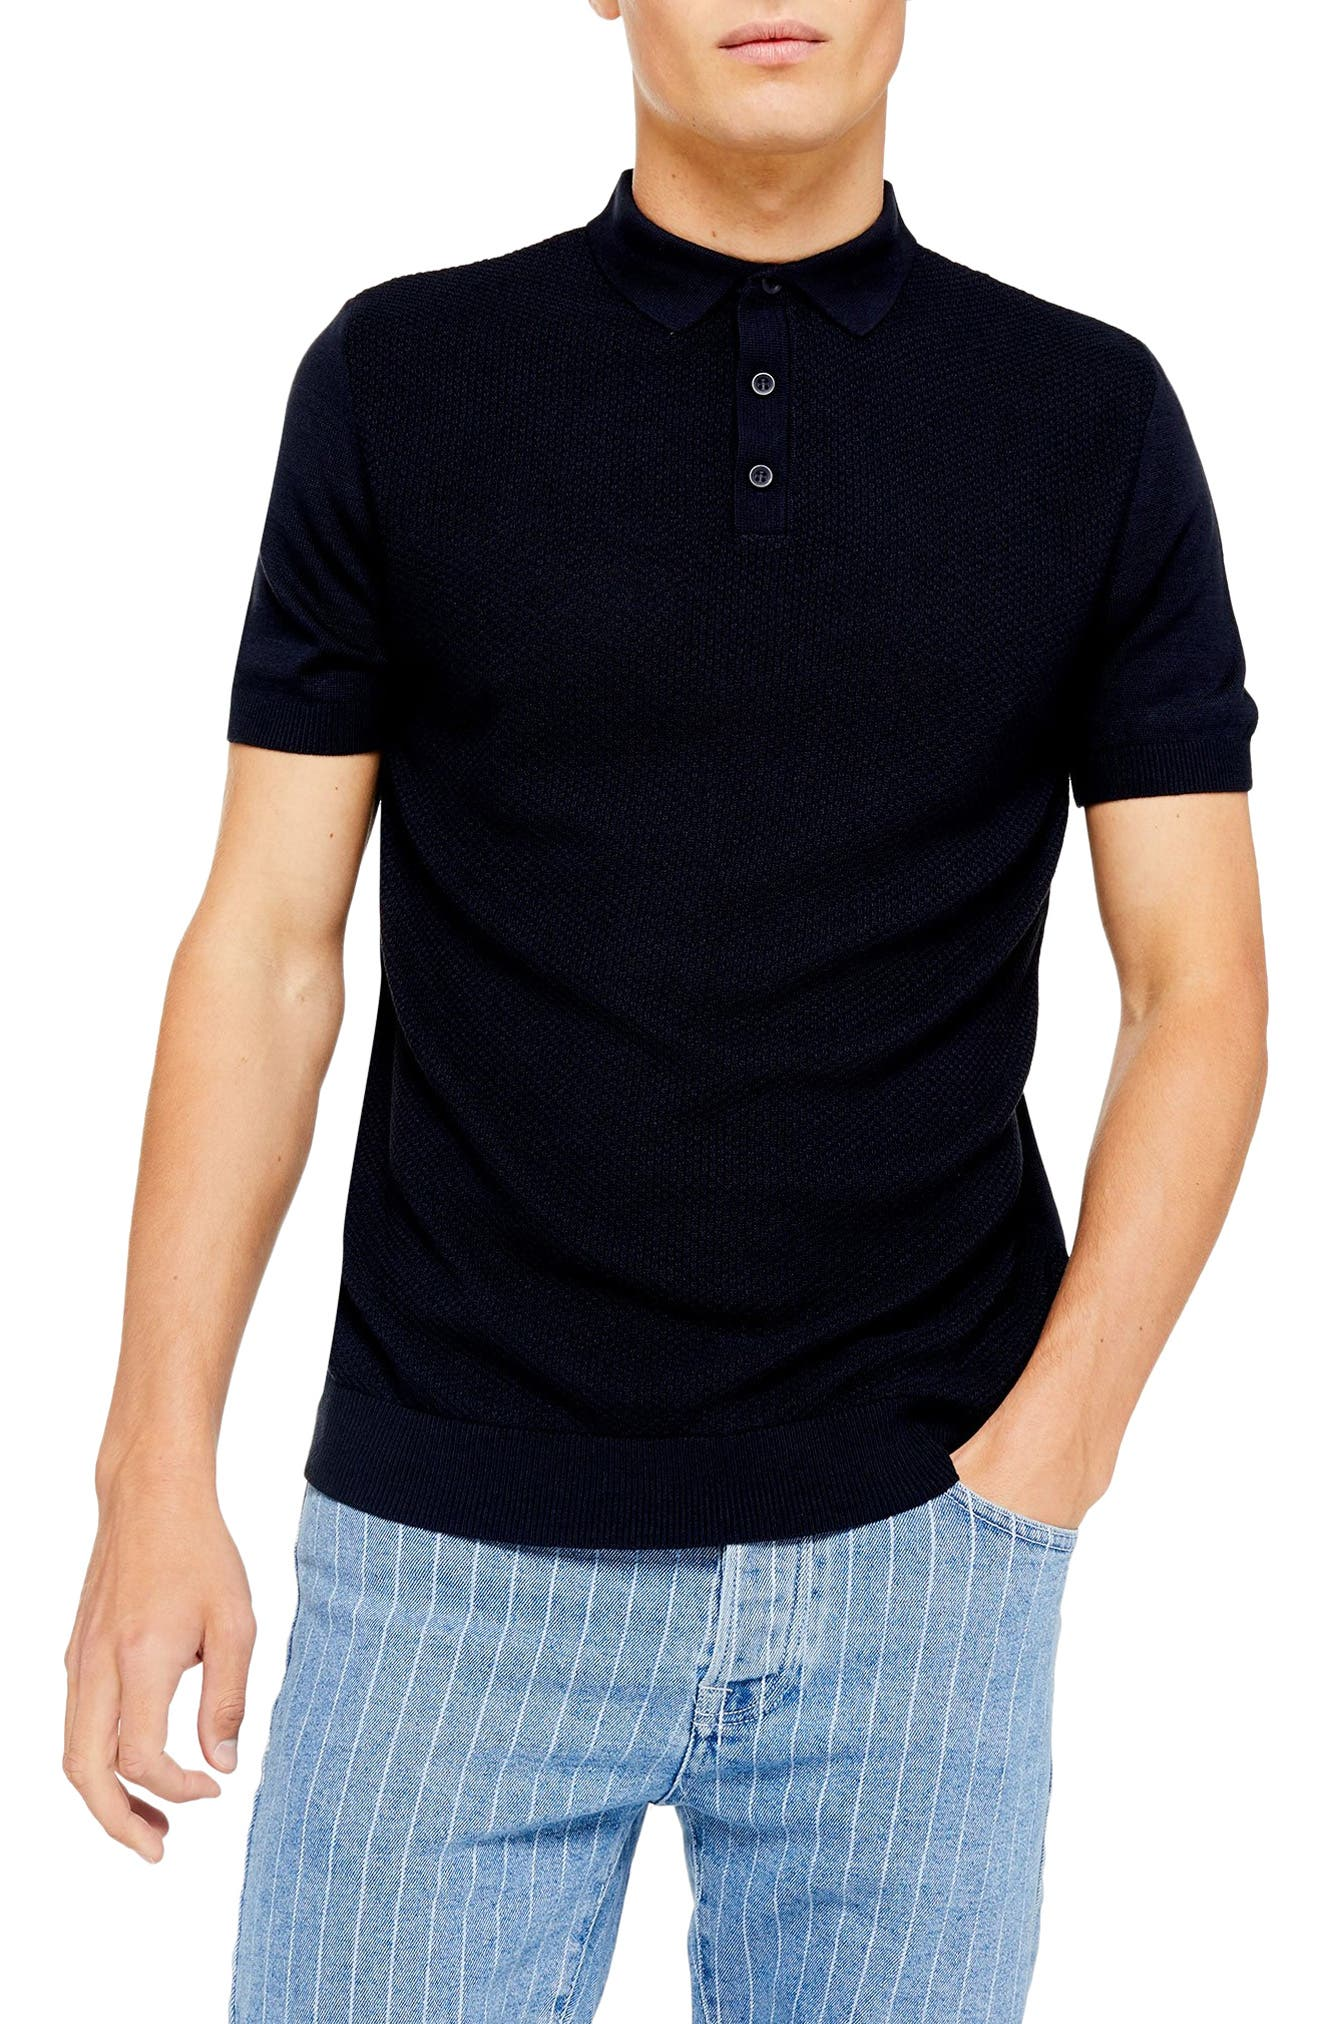 Vintage Shirts – Mens – Retro Shirts Mens Topman Classic Sweater Polo Shirt Size XX-Large - Blue $45.00 AT vintagedancer.com